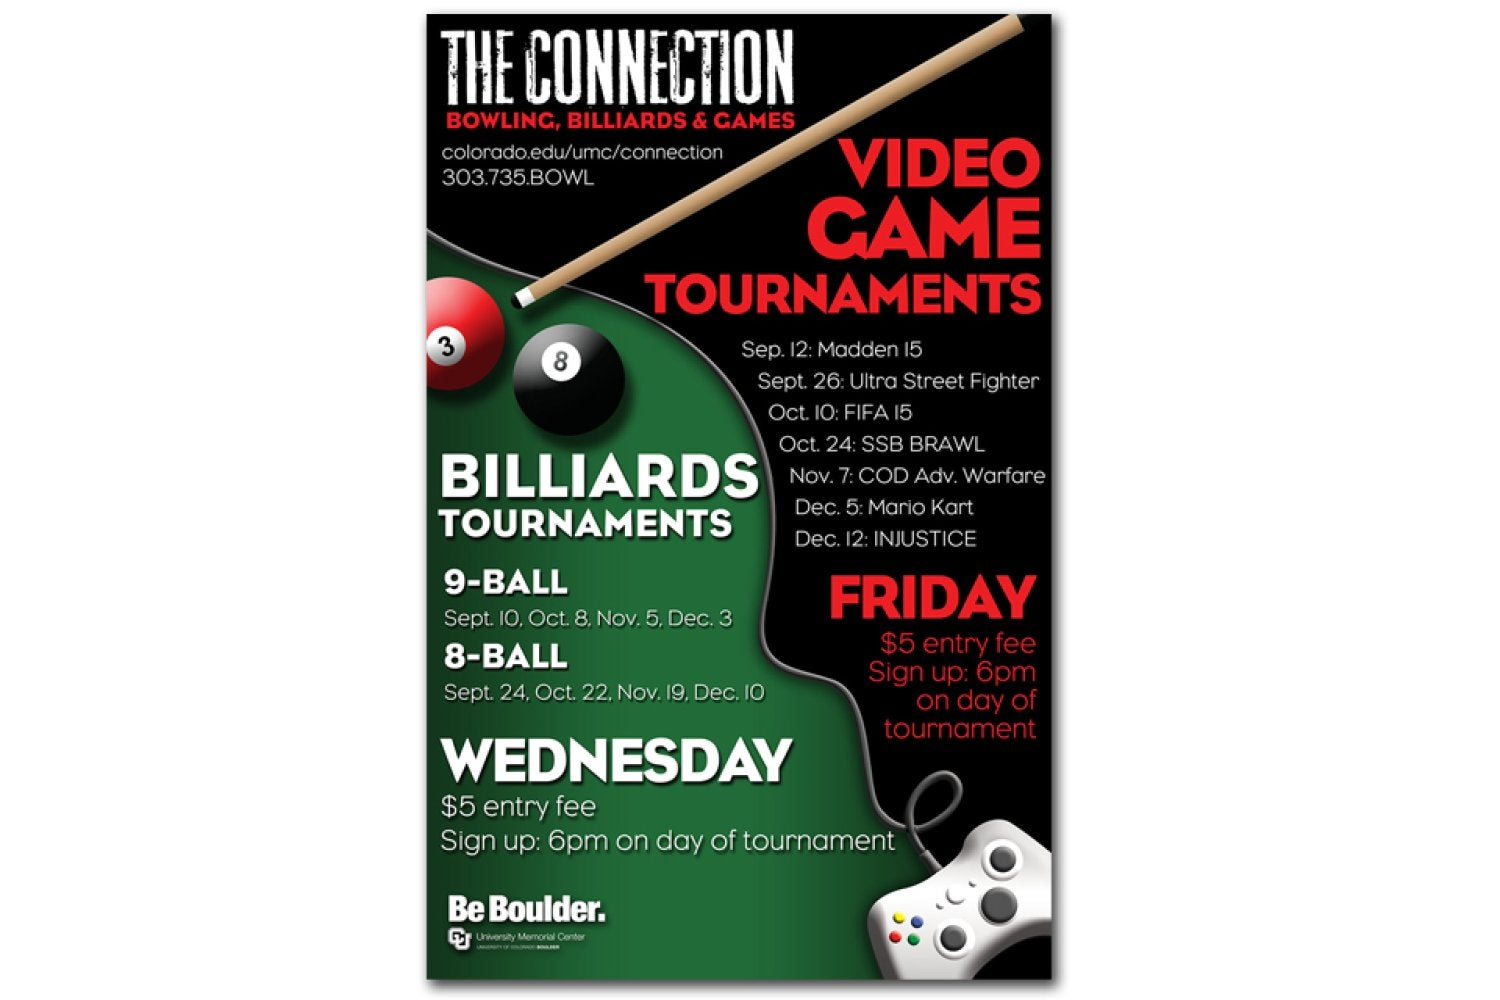 The Connection's poster design for video game and billiards tournaments that won 1st place.